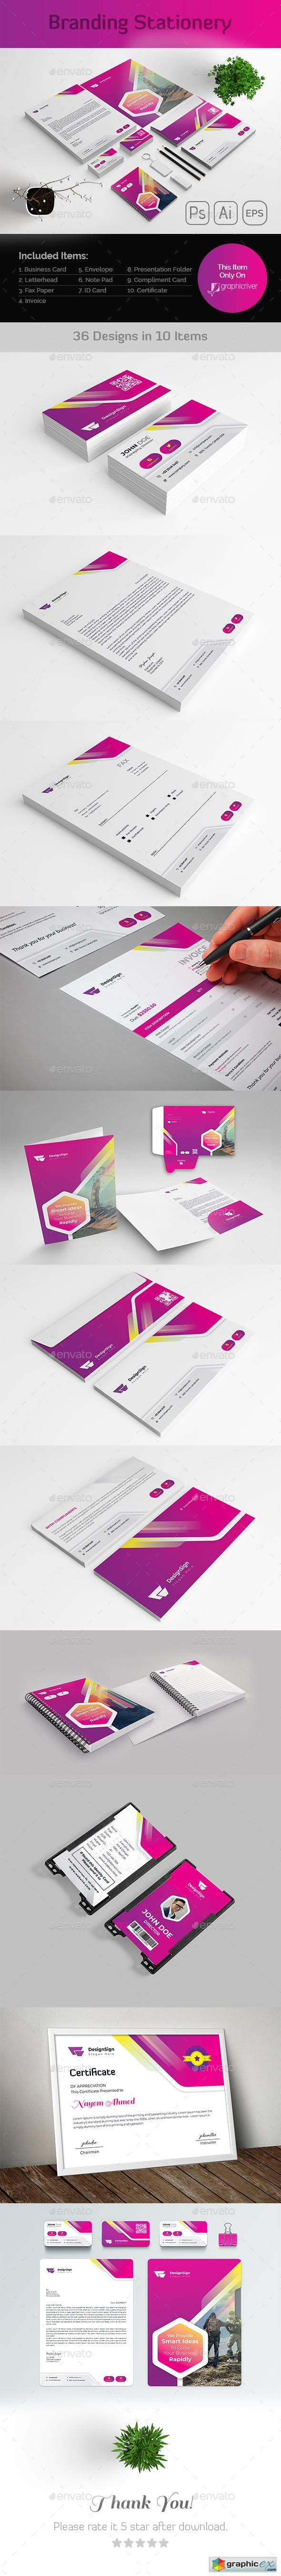 Branding Stationery Template